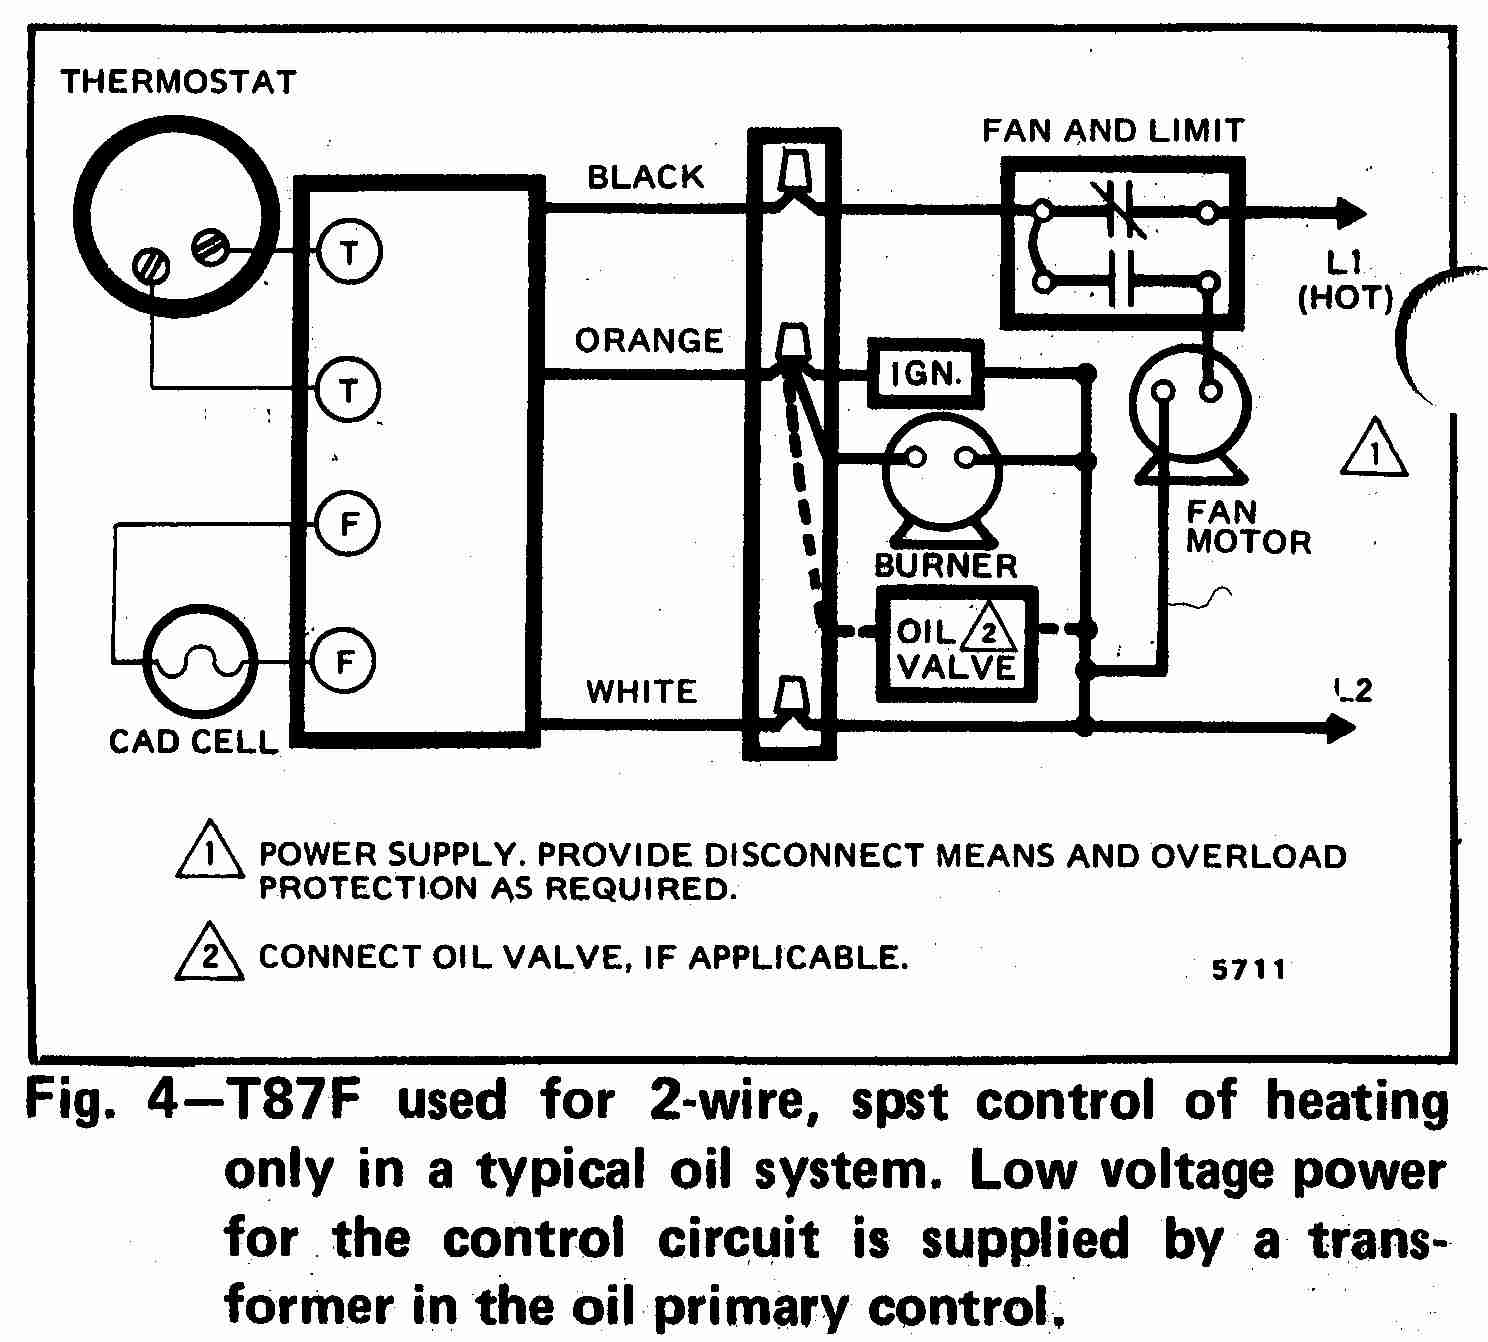 Gas Furnace Schematic Ladder Wiring Diagram With Bryant Defrost Circuit Board Hvac Wire Detailed Schematics Rh Keyplusrubber Com Goodman Heat Pump Control